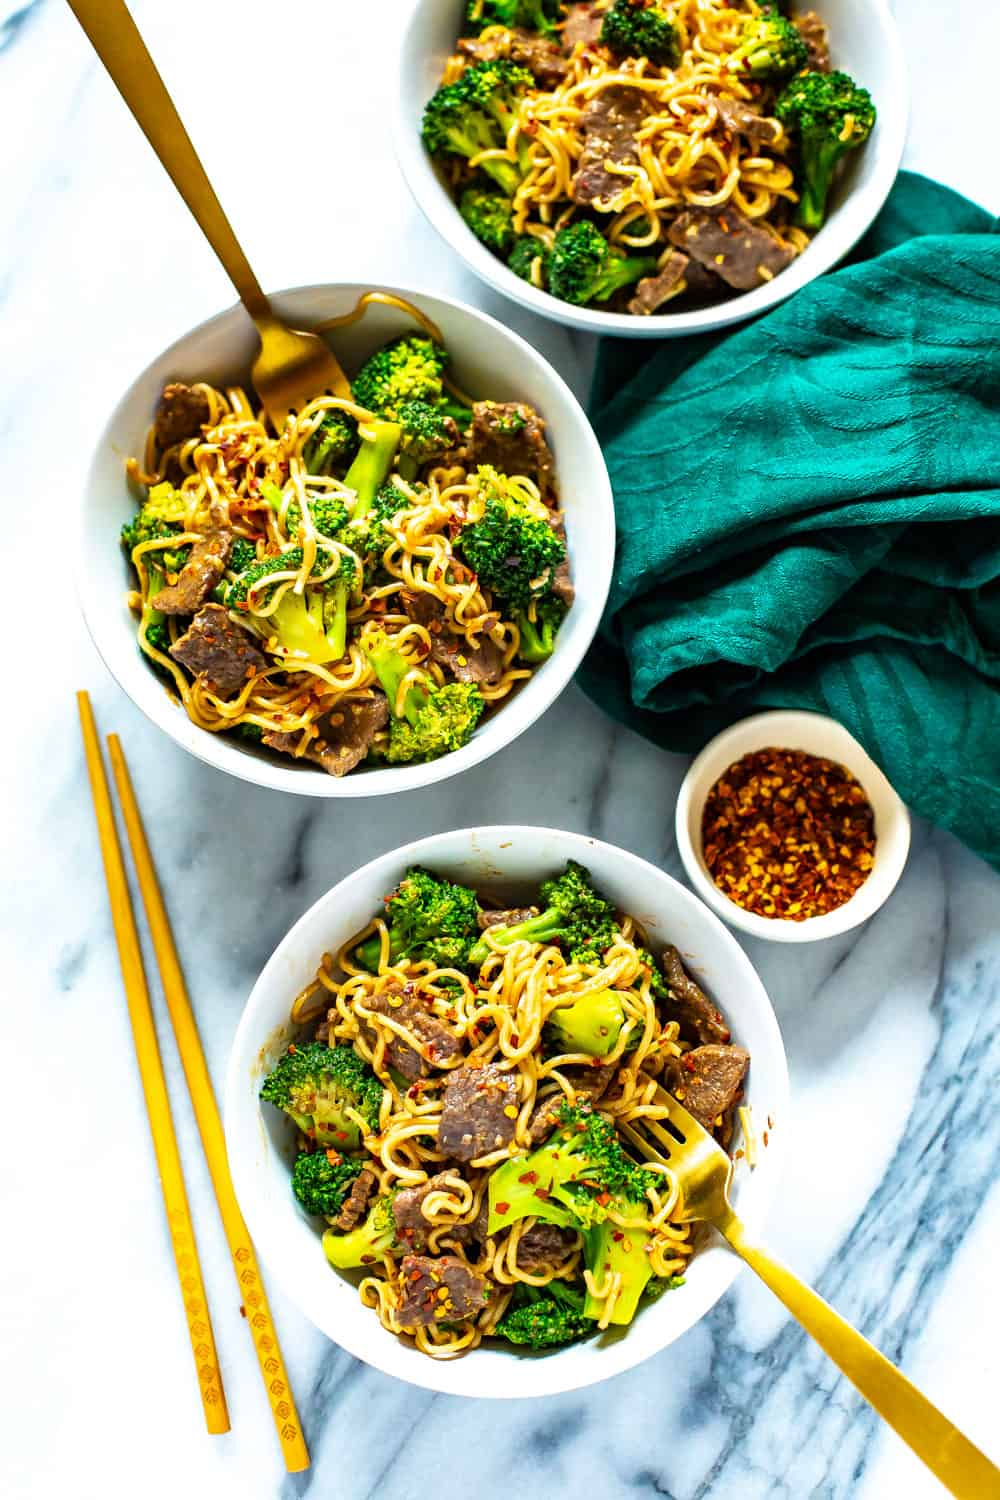 stir fry beef with broccoli served in bowls